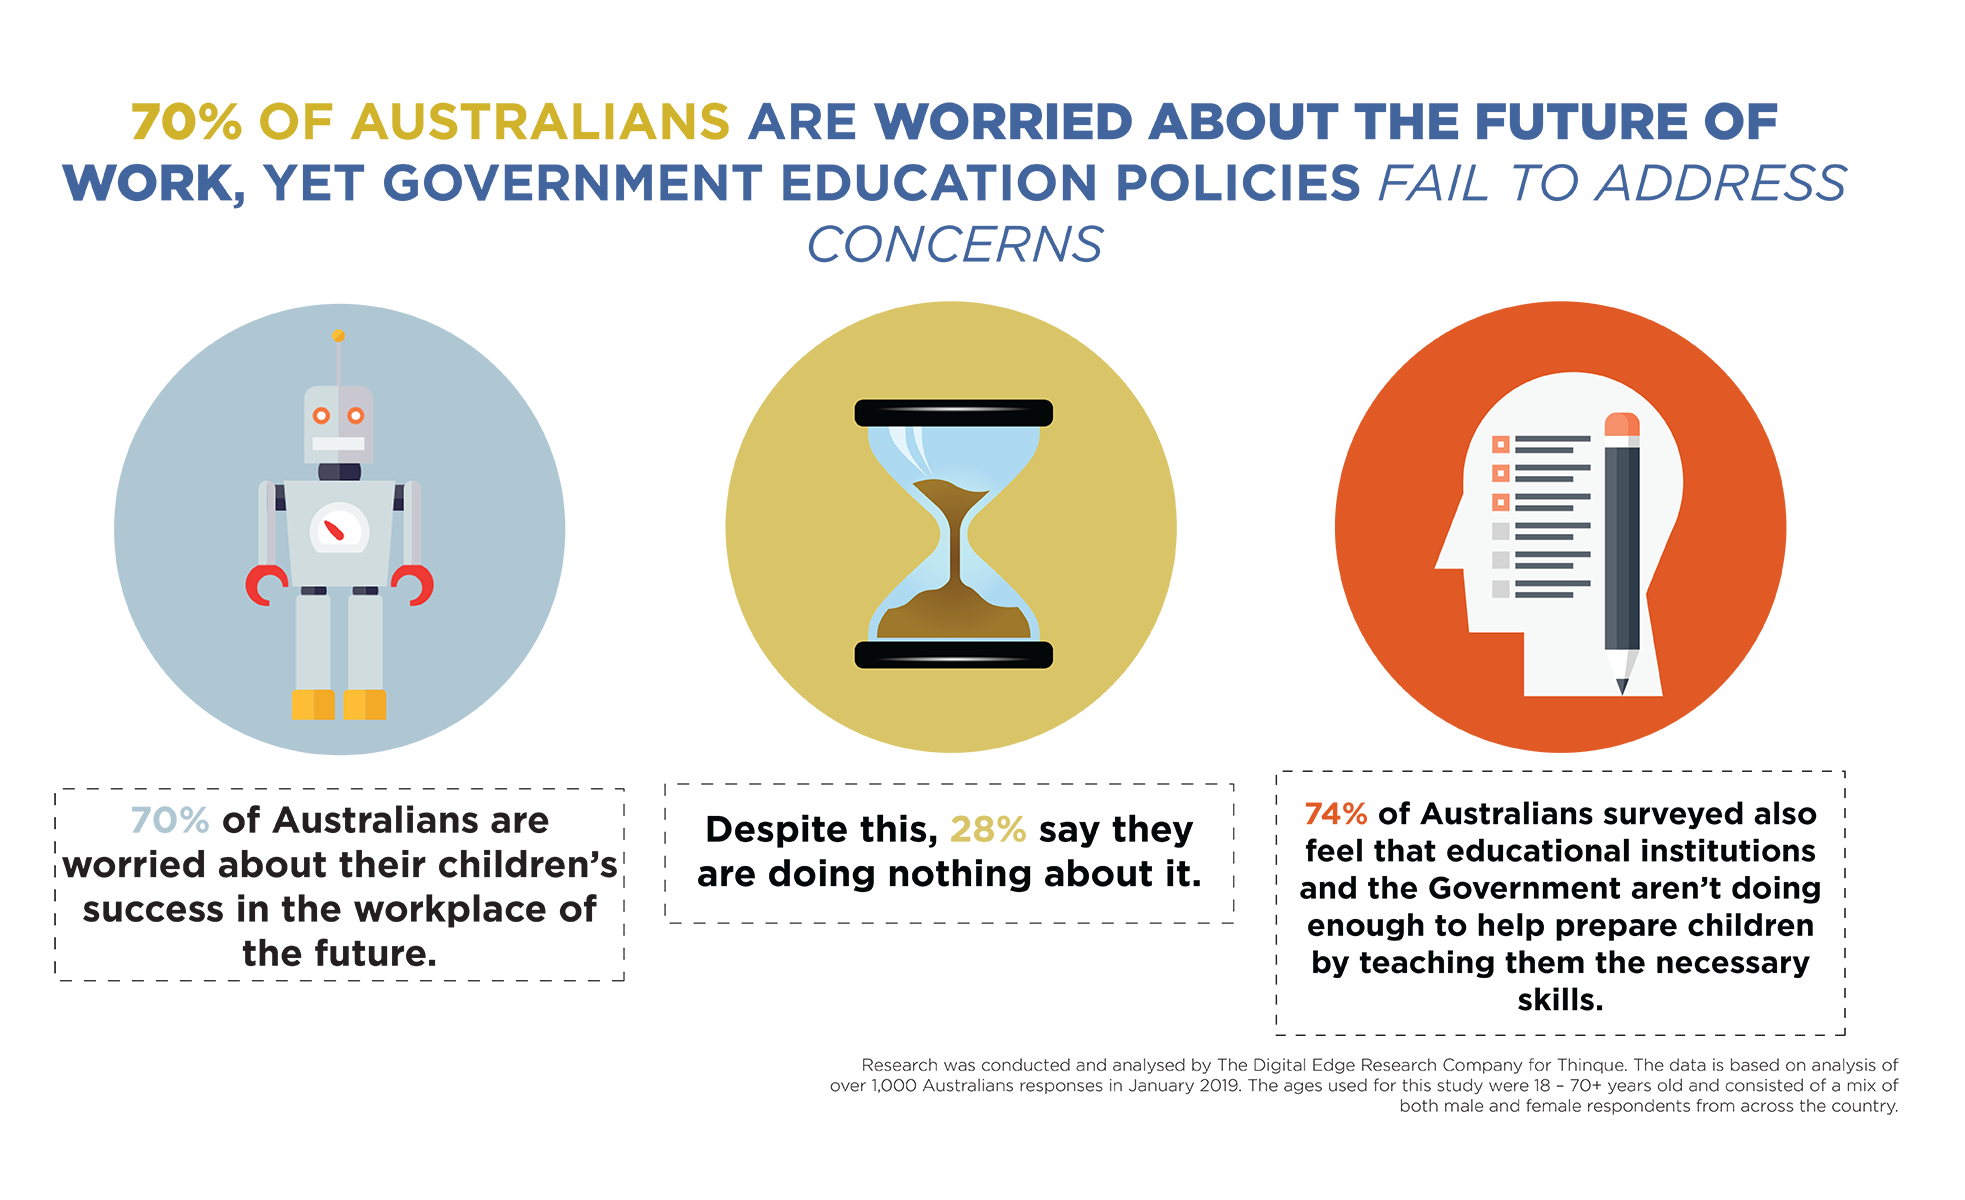 70% of Australians are worried about the future of work